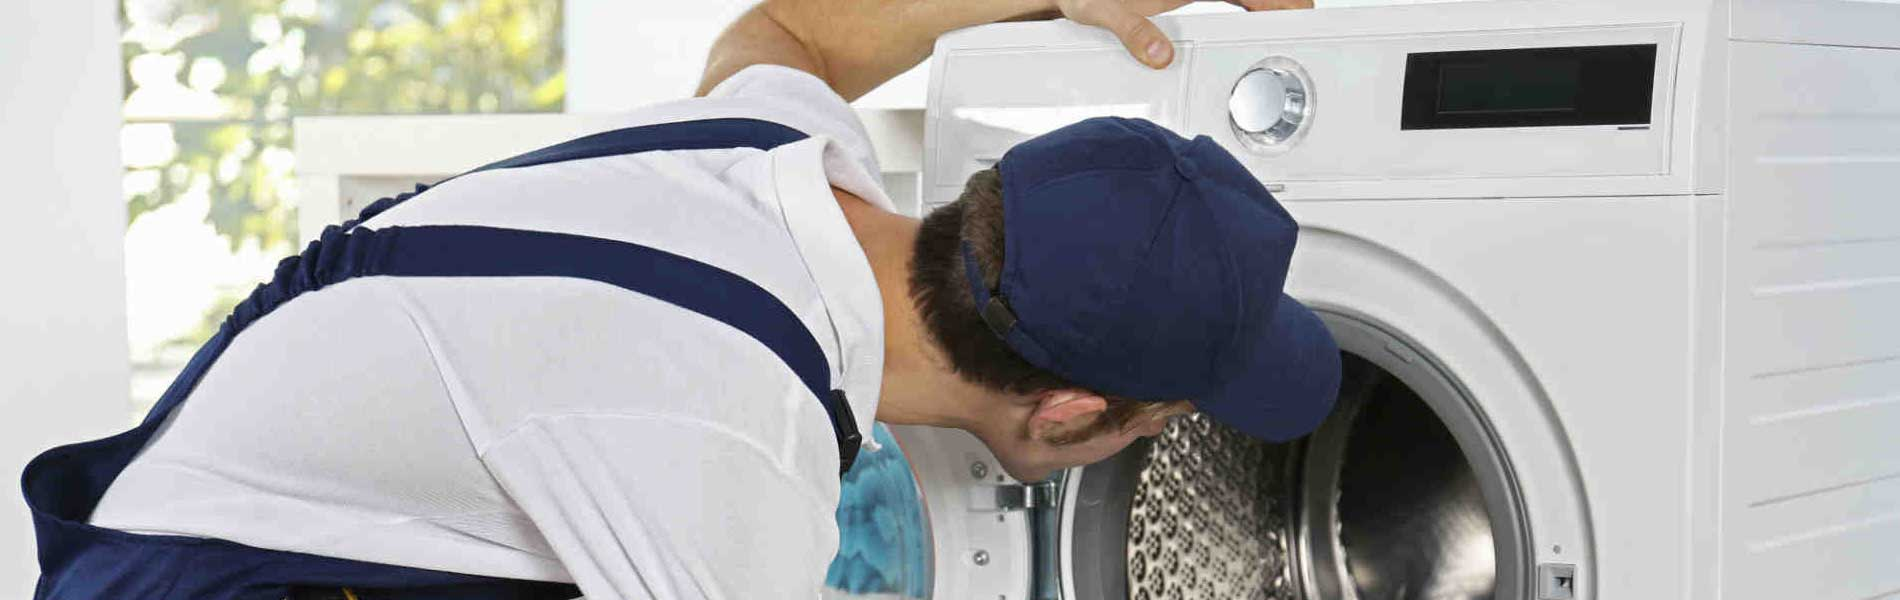 IFB Washing Machine Repair in Greams road